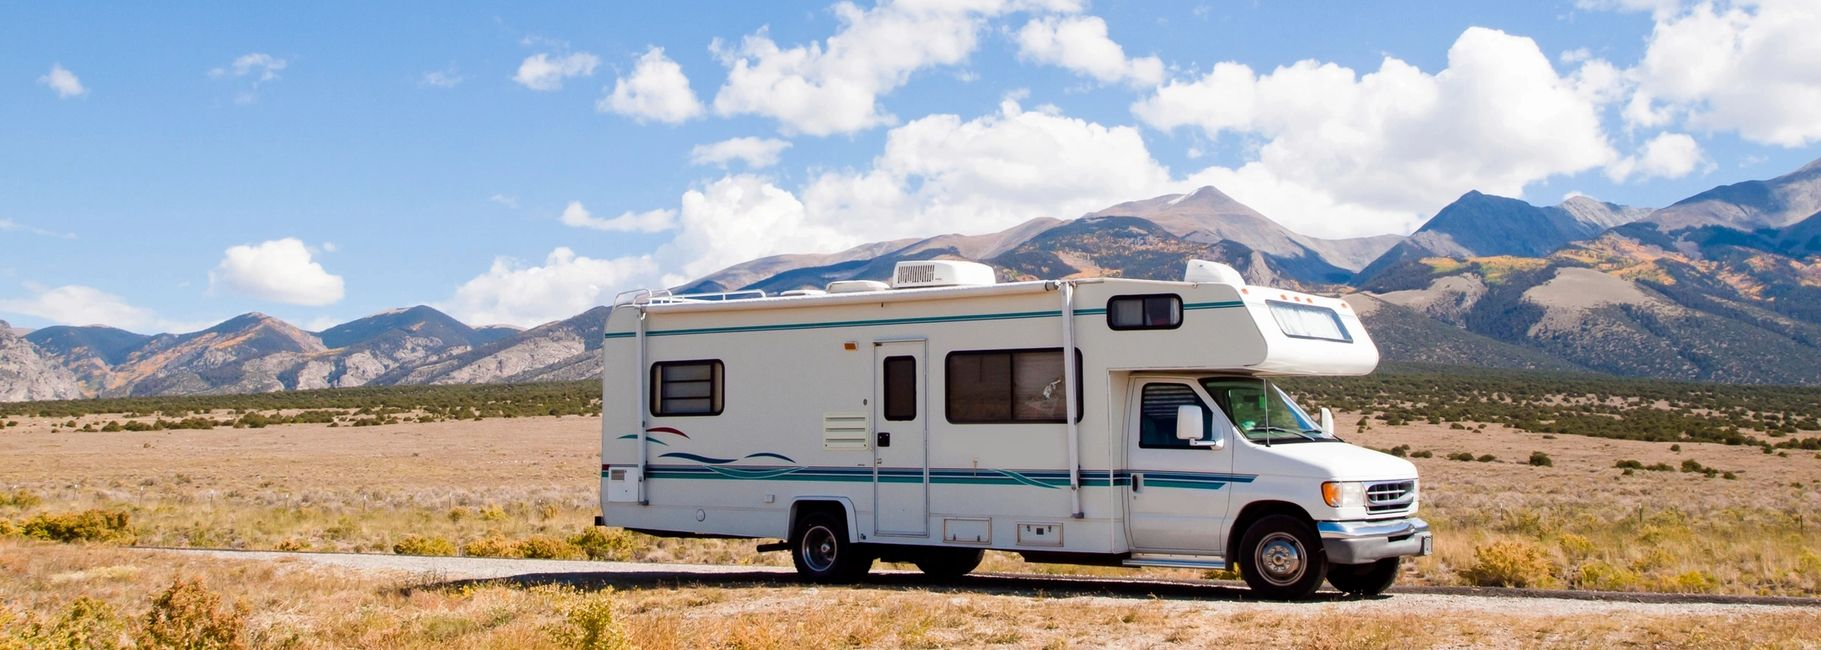 CPR offers RV cleaning services for travel trailers, motor homes, campers and more